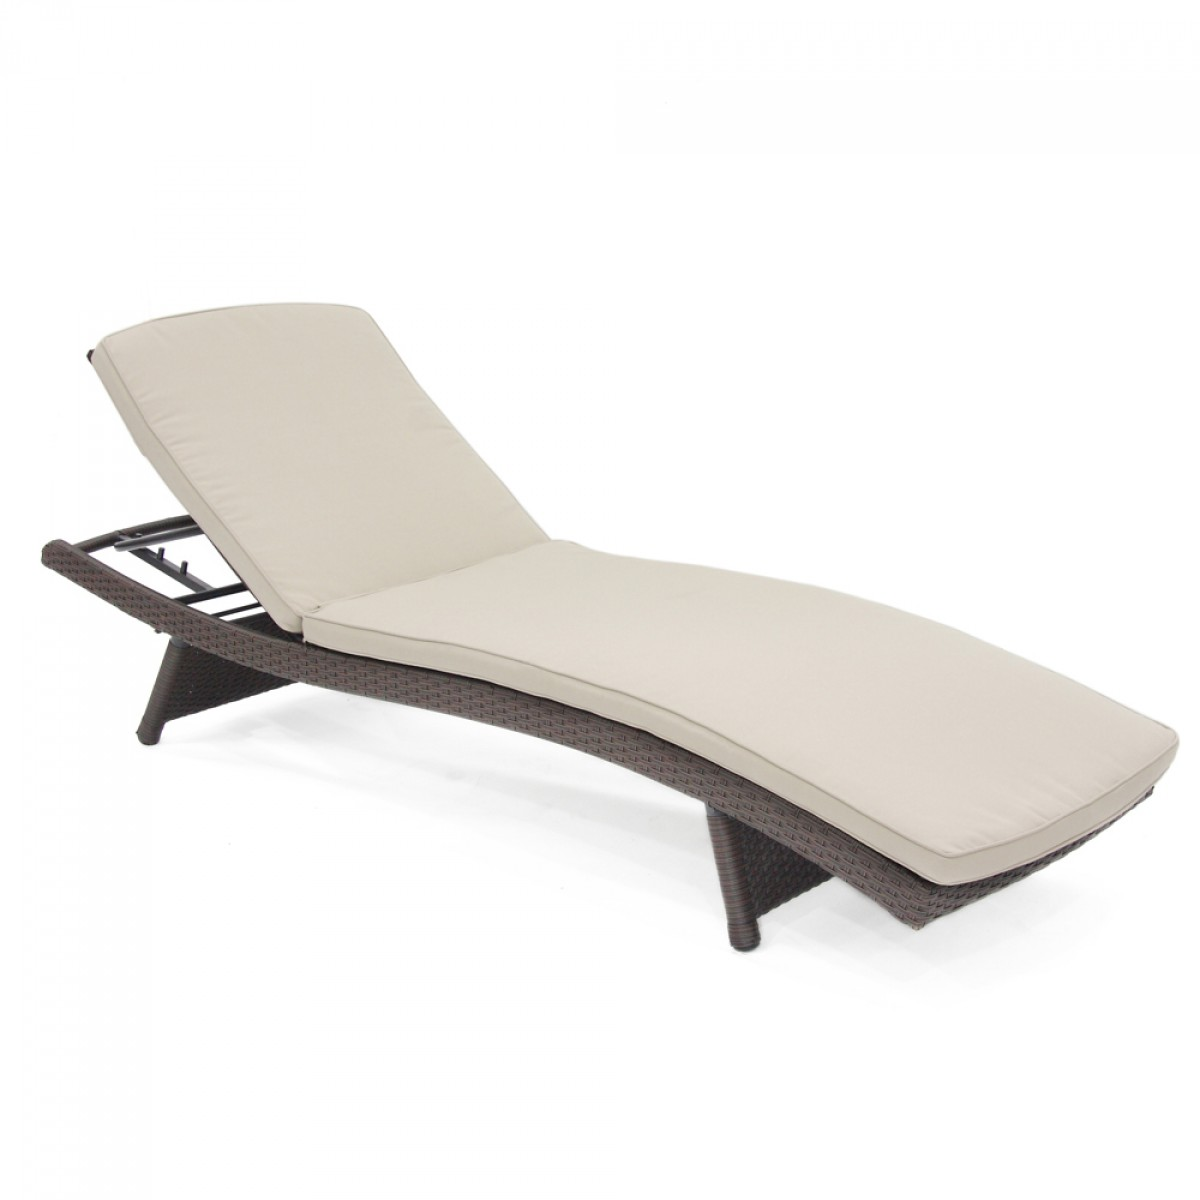 Tan chaise lounger cushion for Chaise longue cushion